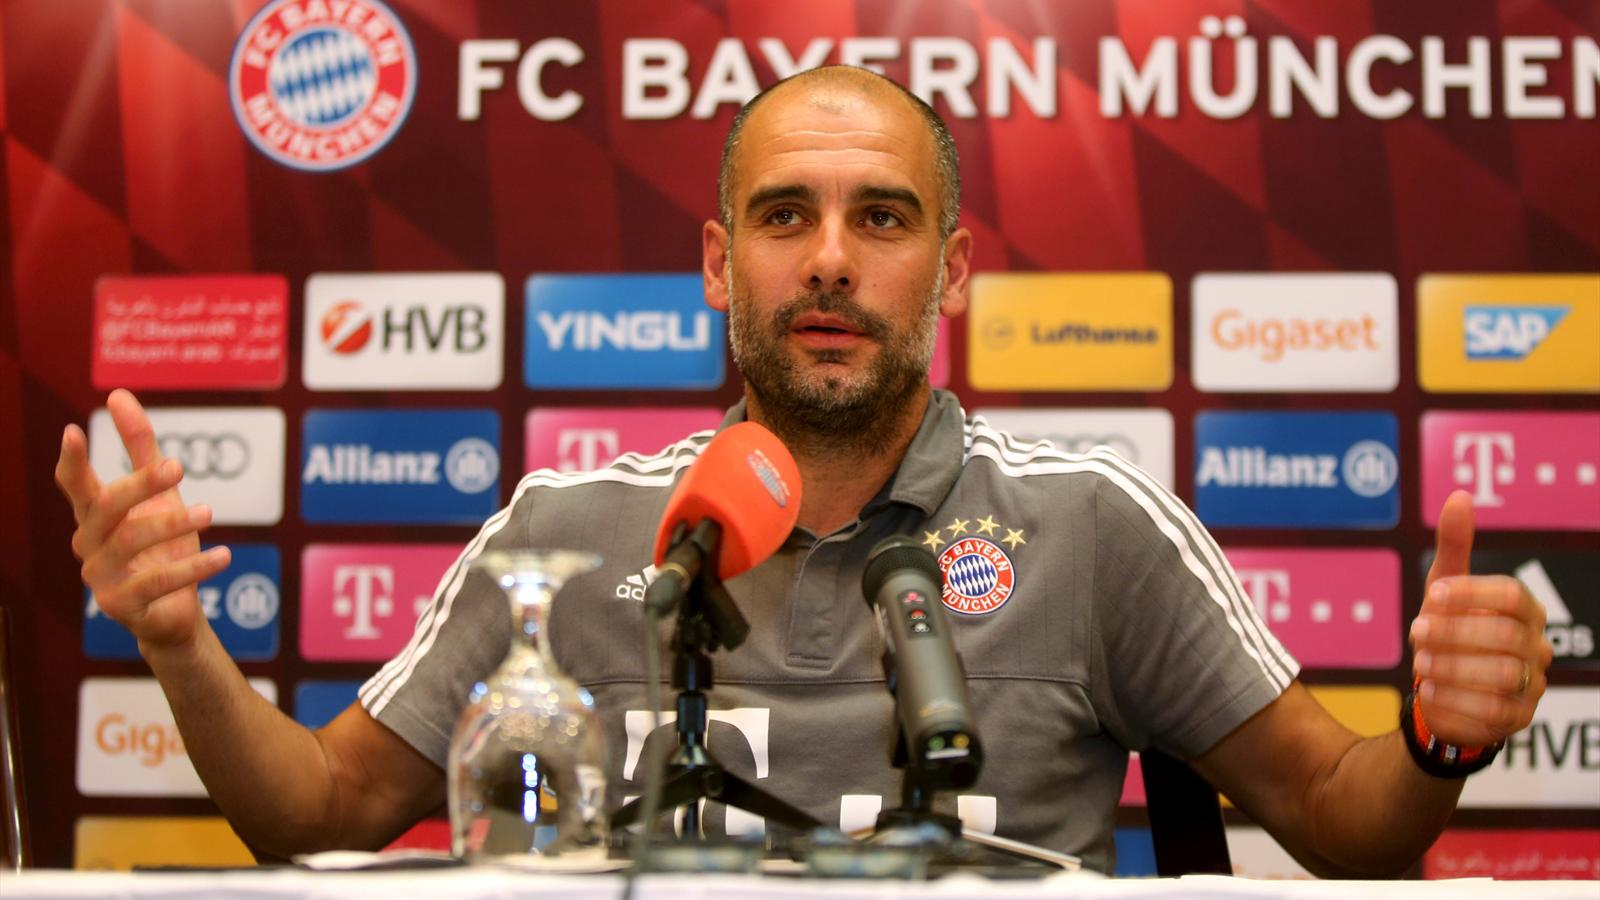 Bayern Munich's Spanish head coach Pep Guardiola speaks during a press conference